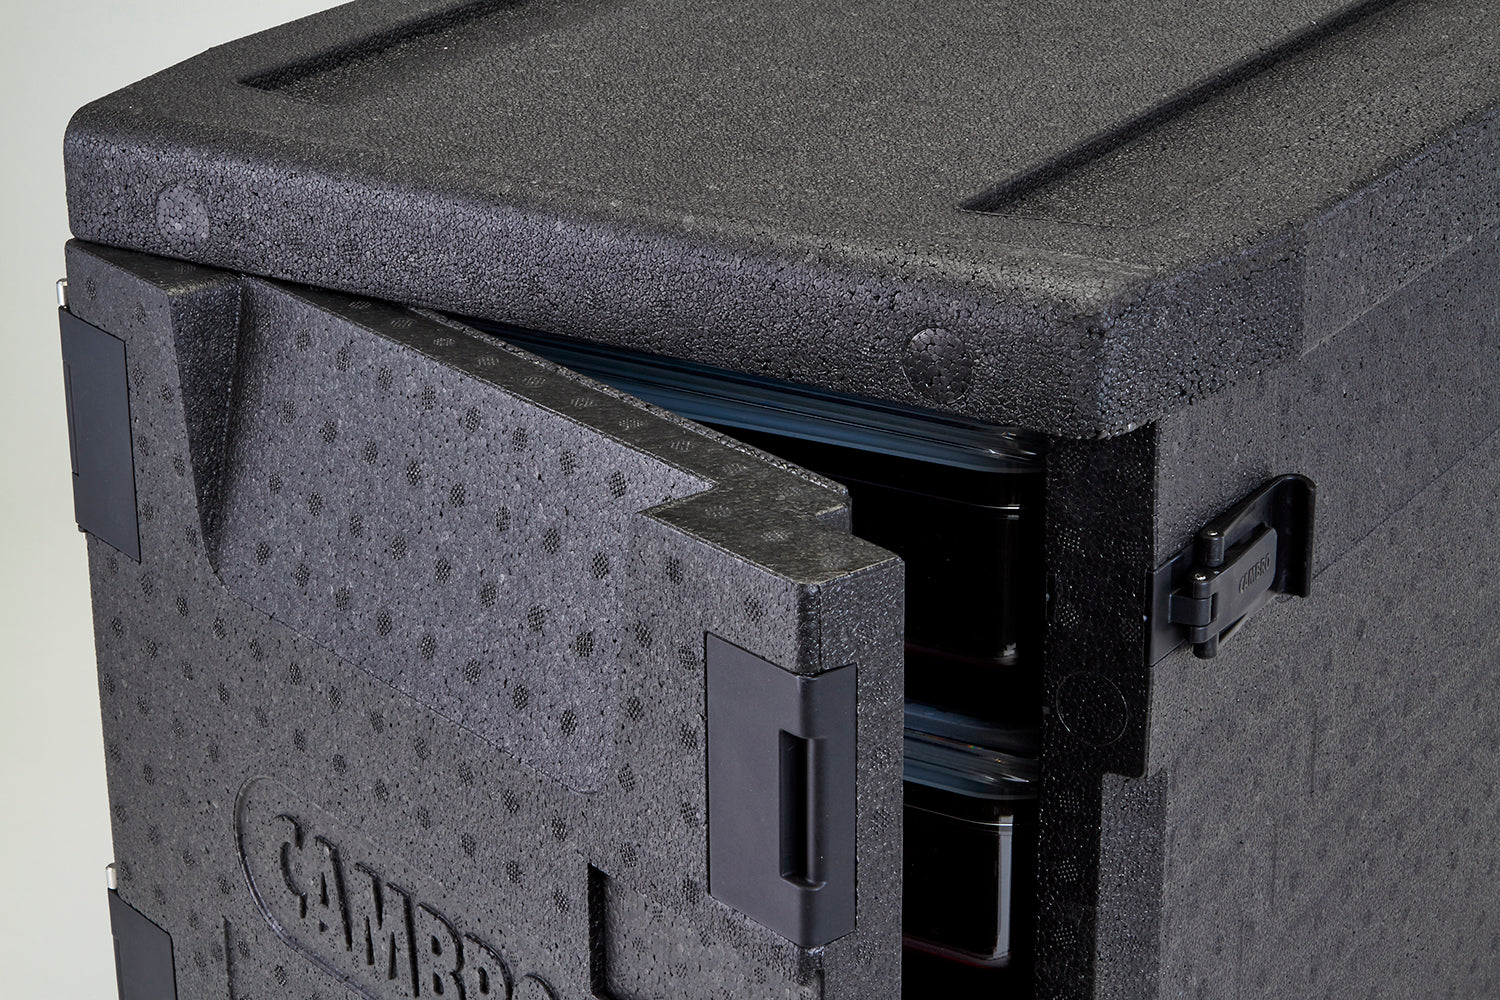 Cambro Front Loader 46 litre Insulated 4 hour Carrier Box 64x44x47cm for GN1/1 Pans EPP300